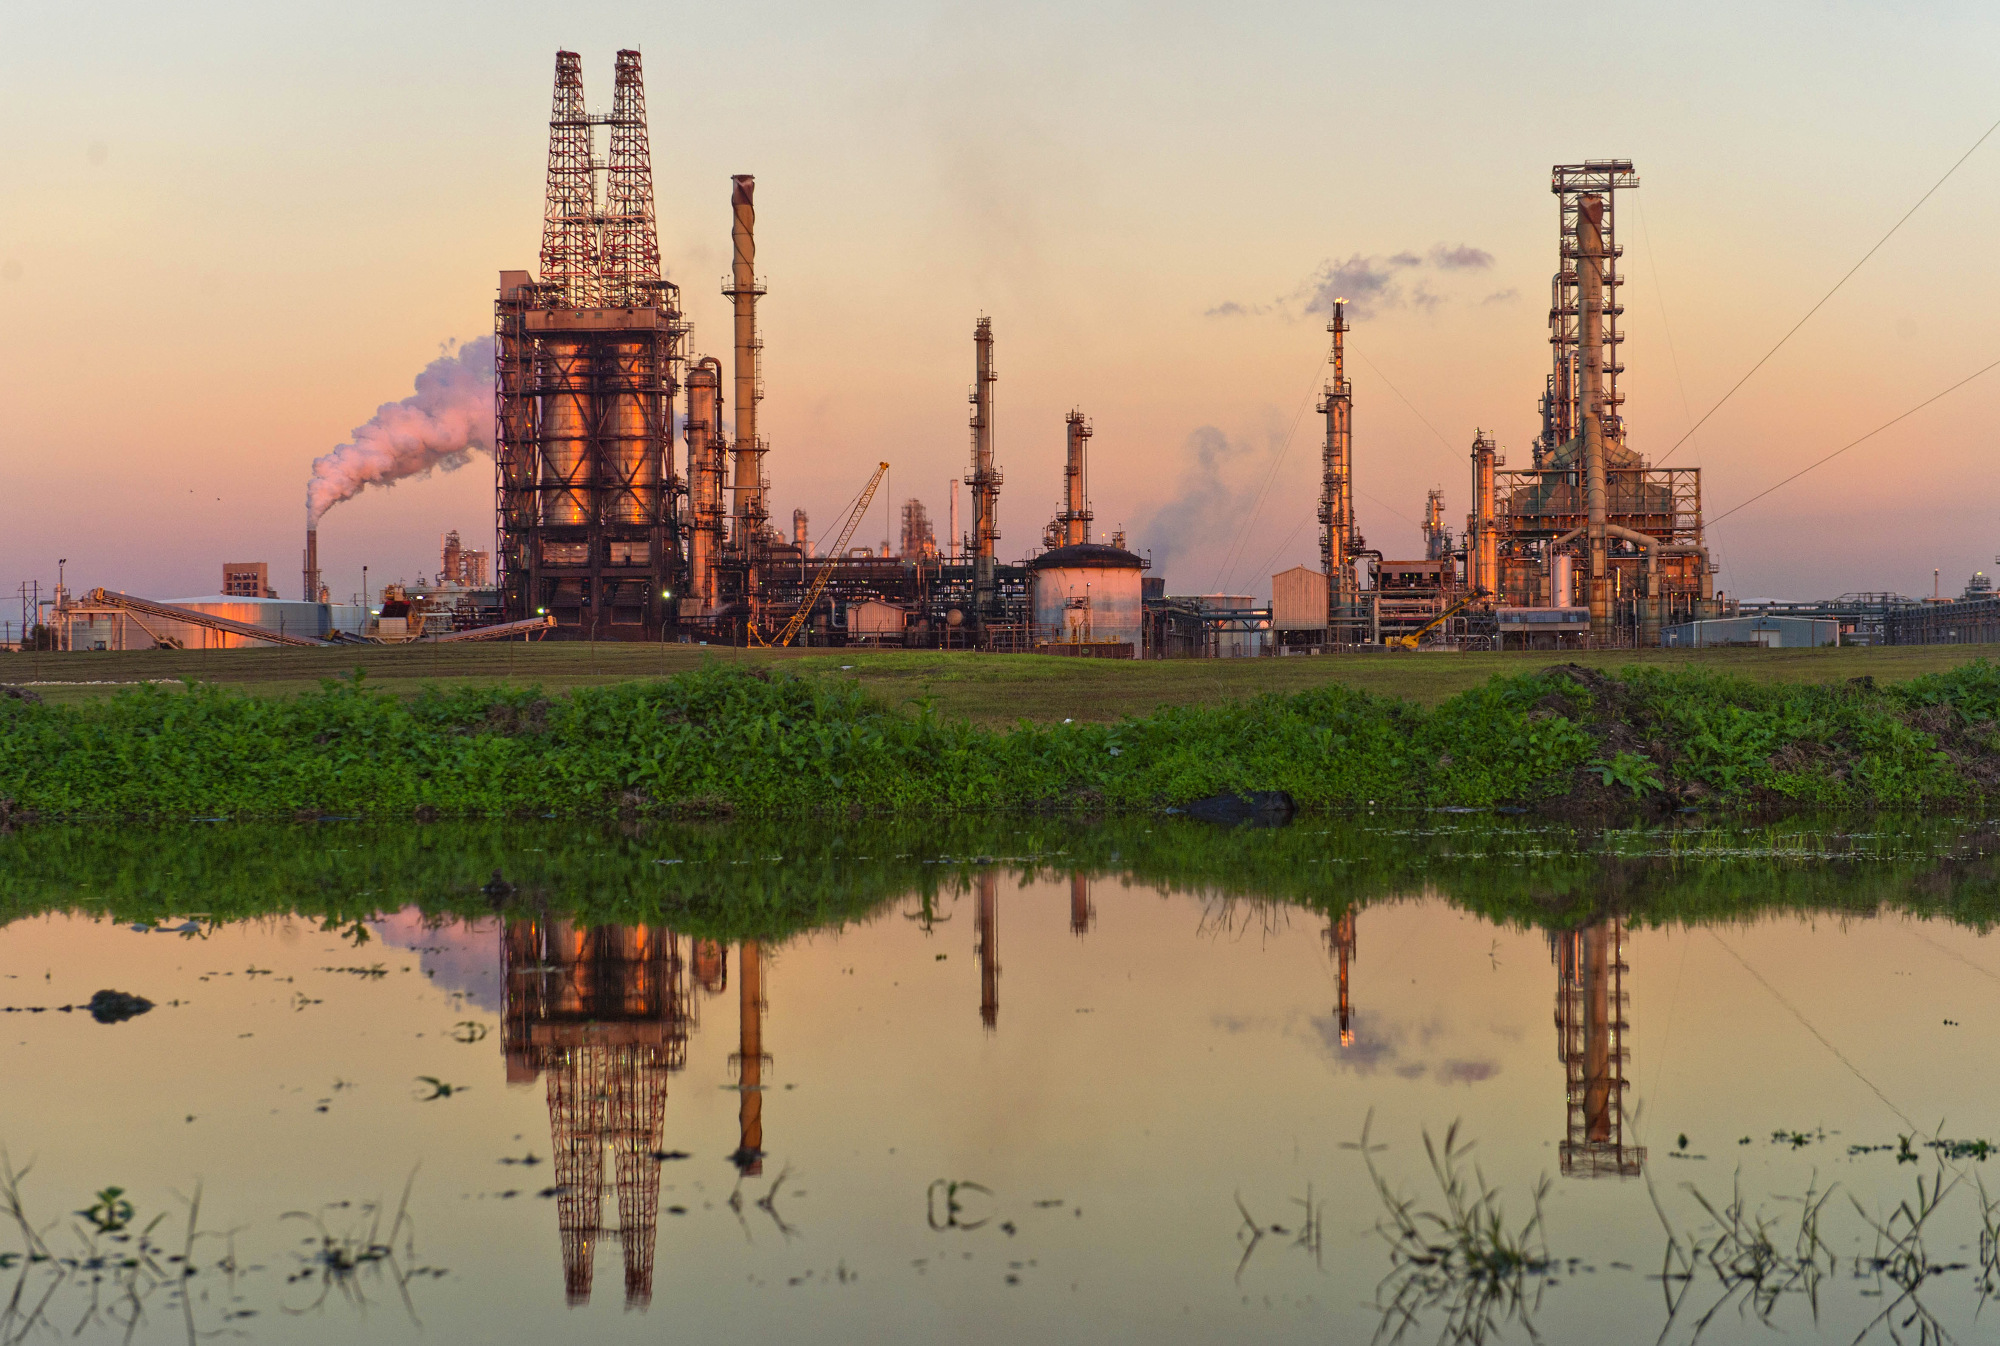 A Citgo oil refinery stands in Corpus Christi, Texas, U.S. Photographer: Eddie Seal/Bloomberg